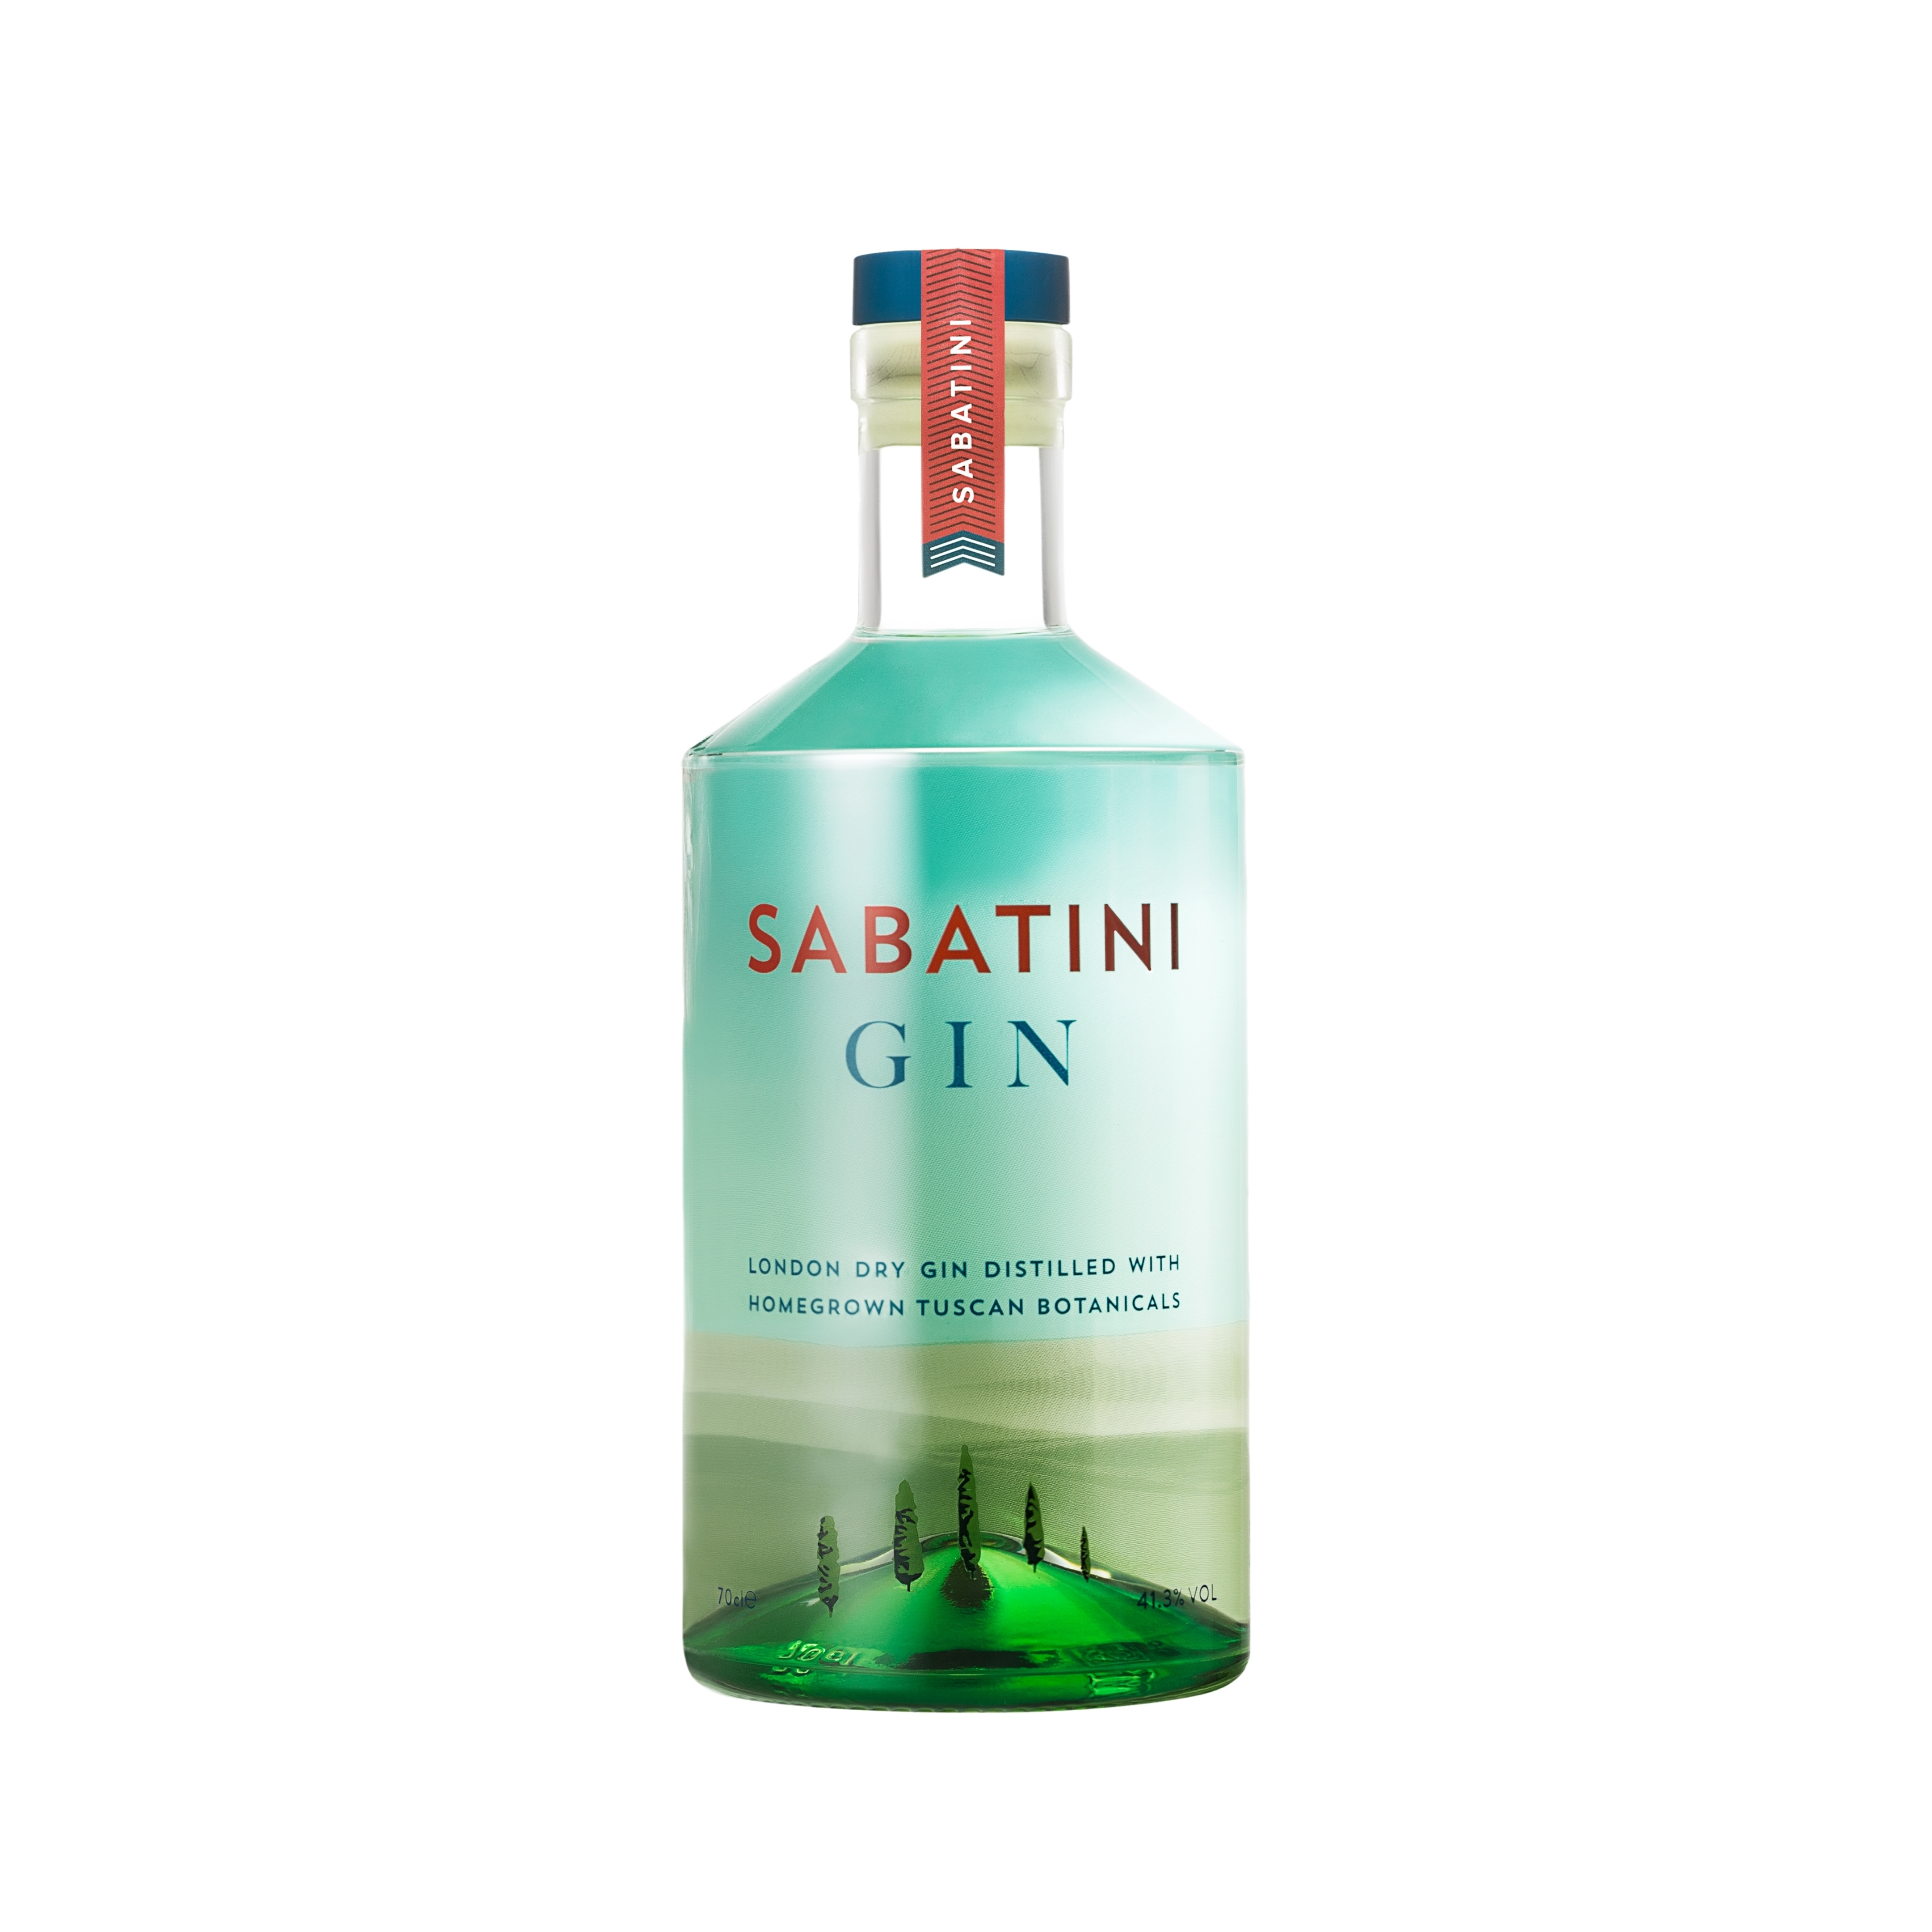 Combo Lampshade Bottle High Quality Sabatini Gin - Sabatini Gin 70 cl - Made in Italy